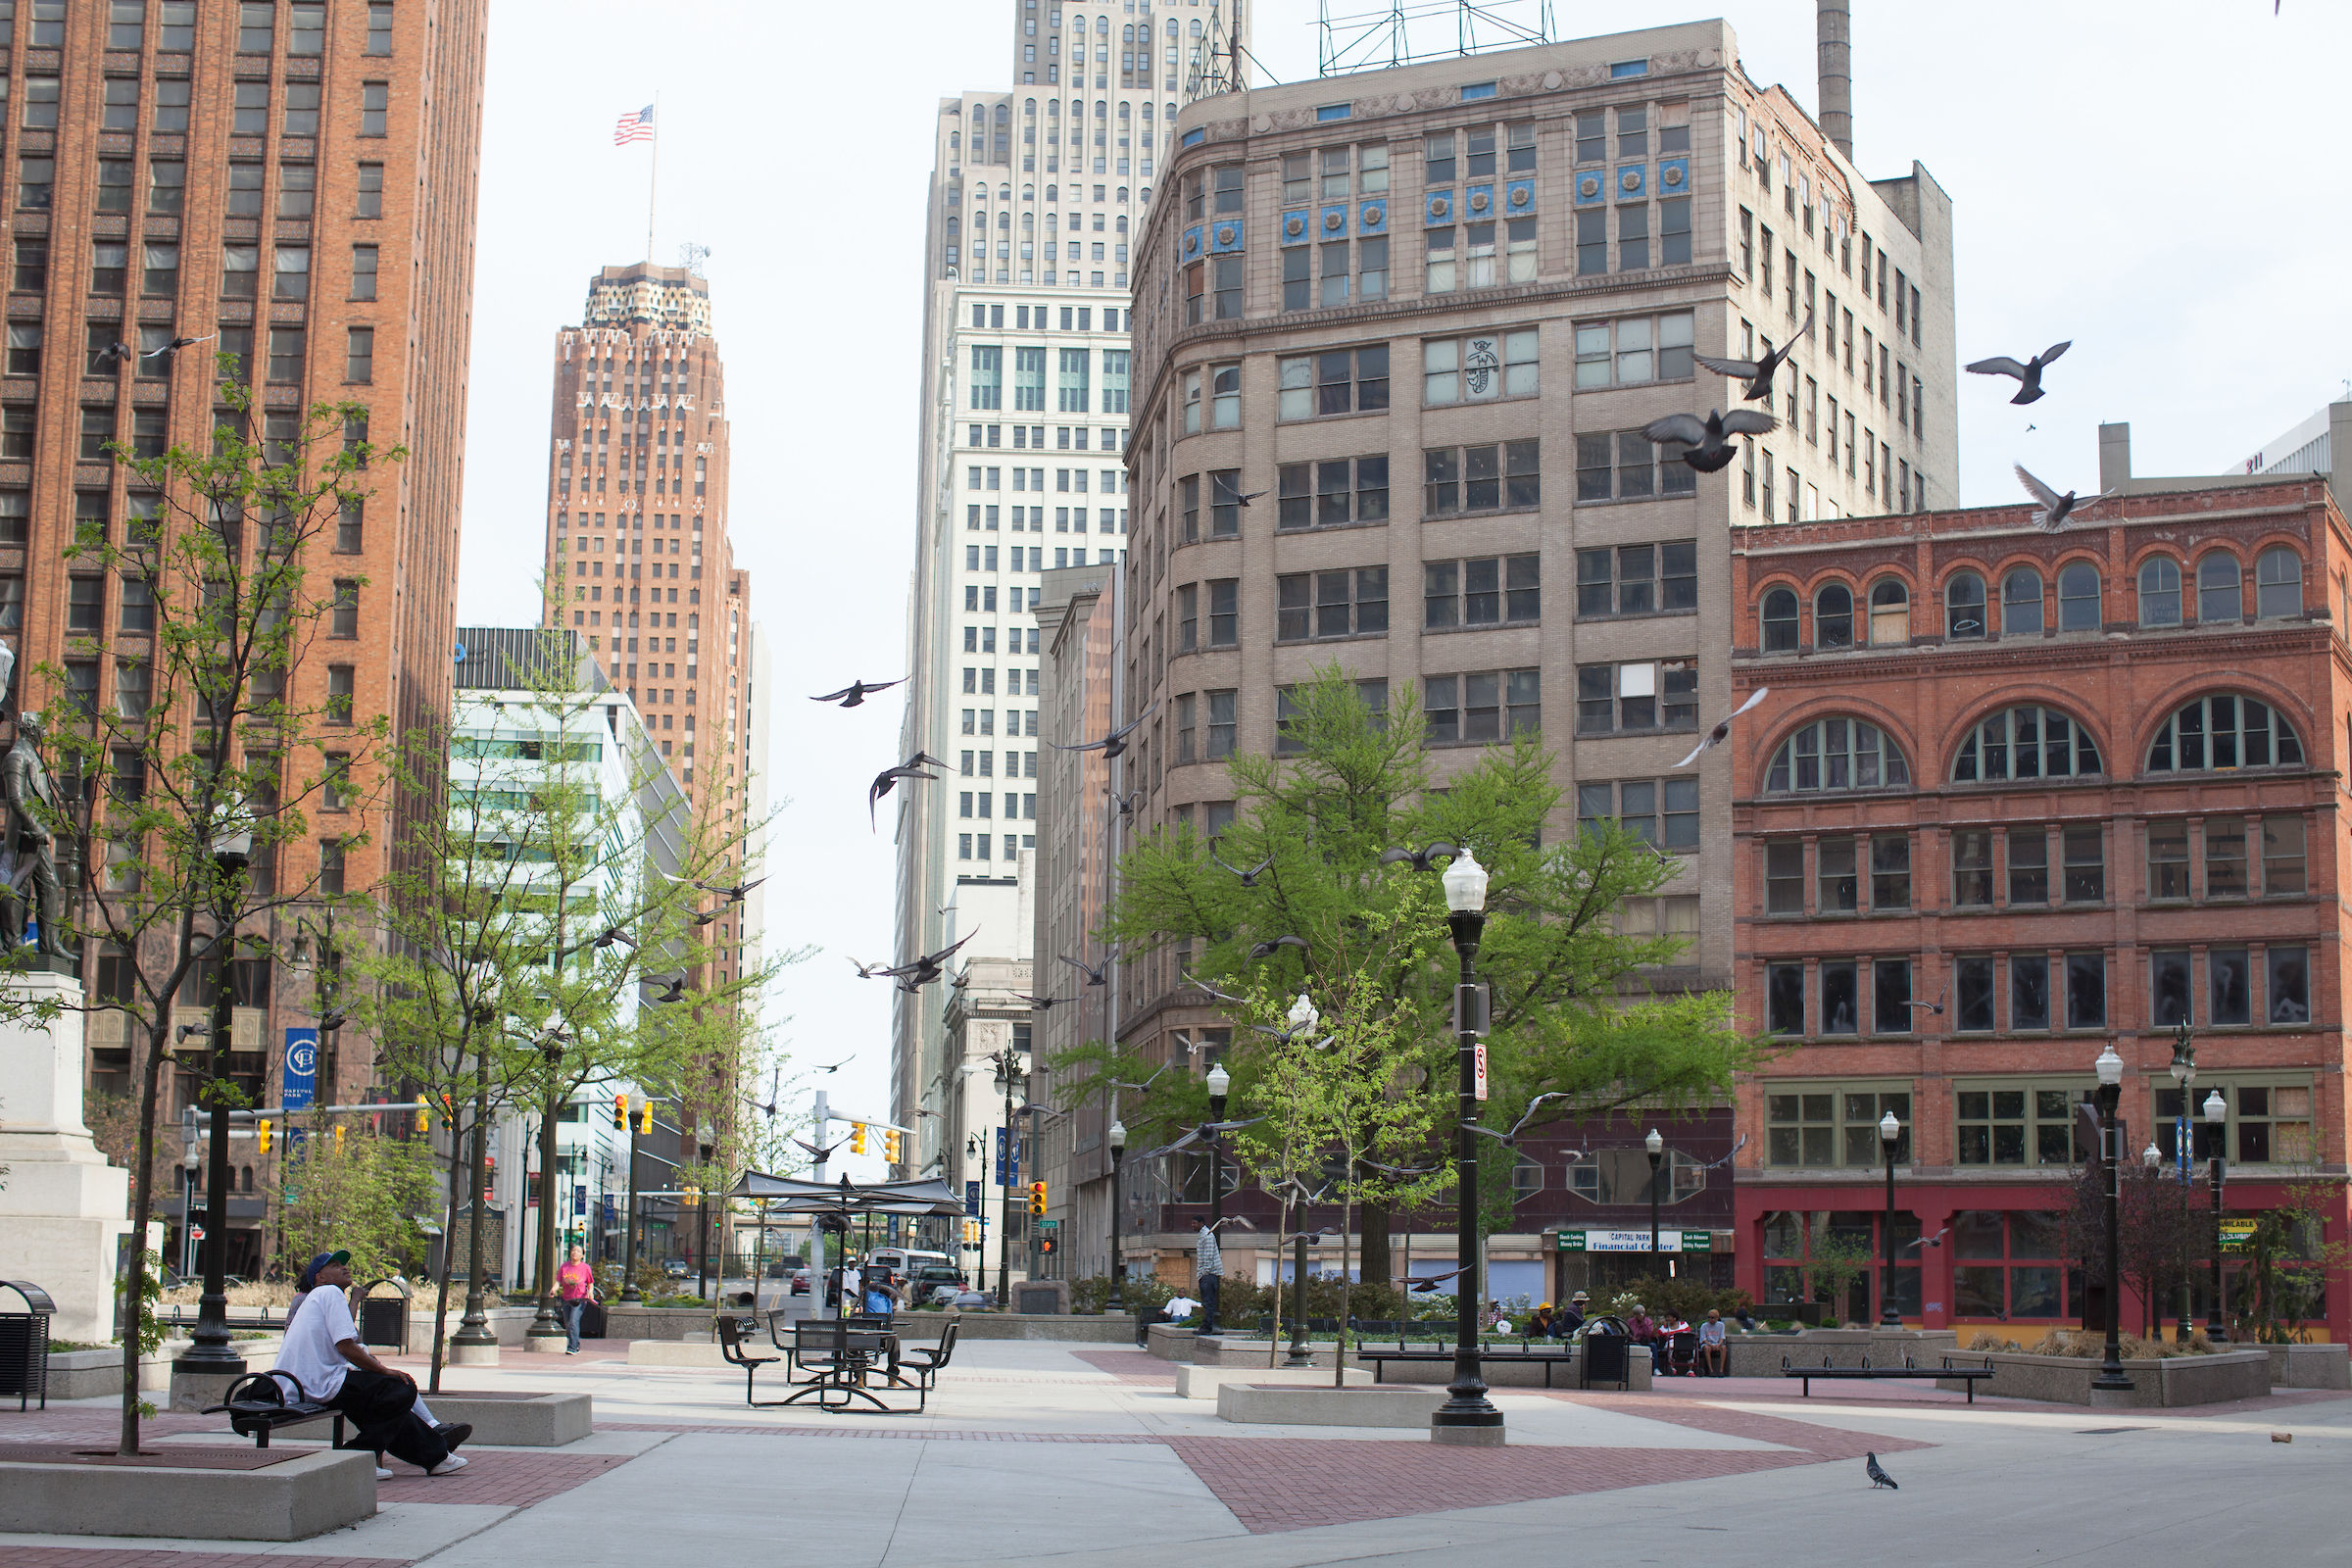 A plaza surrounded by tall buildings. There's a man sitting on a concrete planter around a tree.